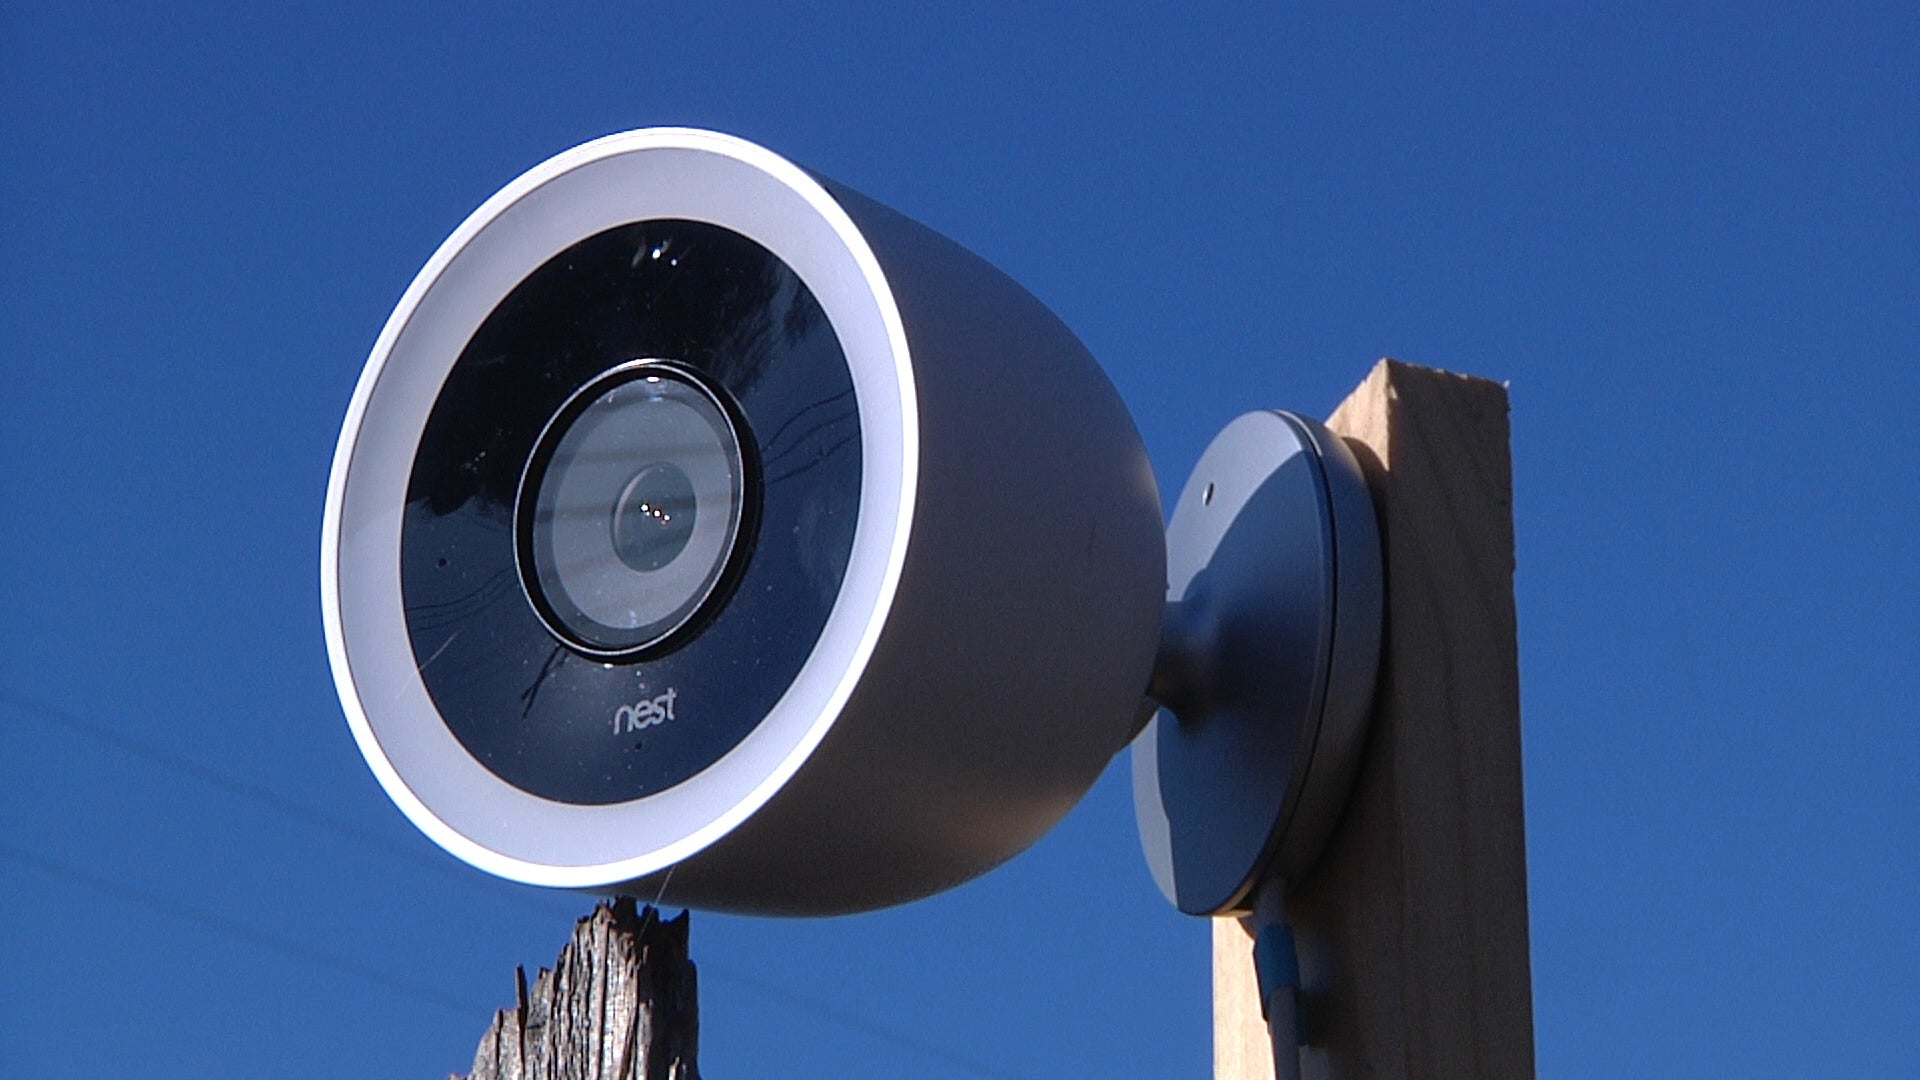 Nest Cam Iq Outdoor Review Idg Tv